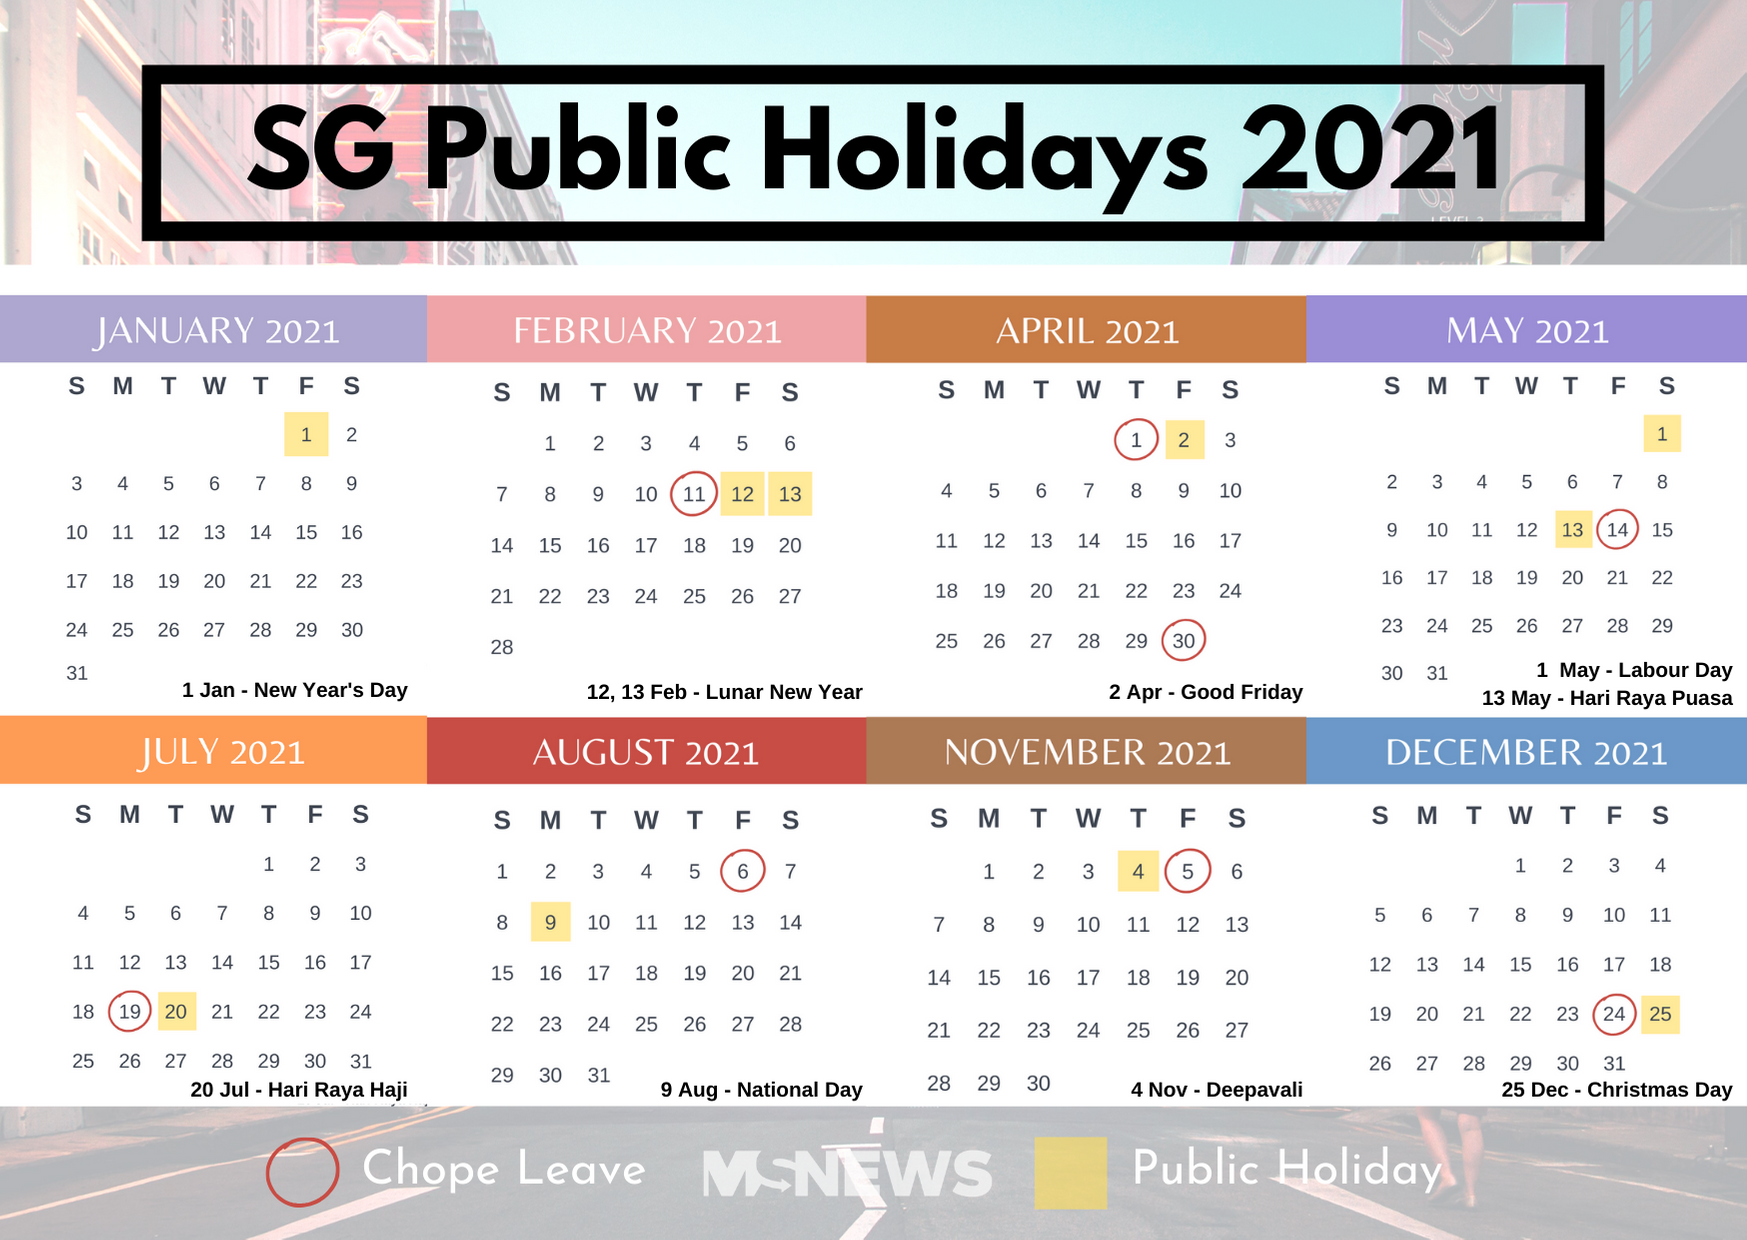 S Pore Public Holidays 2021 Will Give You 9 Long Weekends With 8 Days Annual Leave